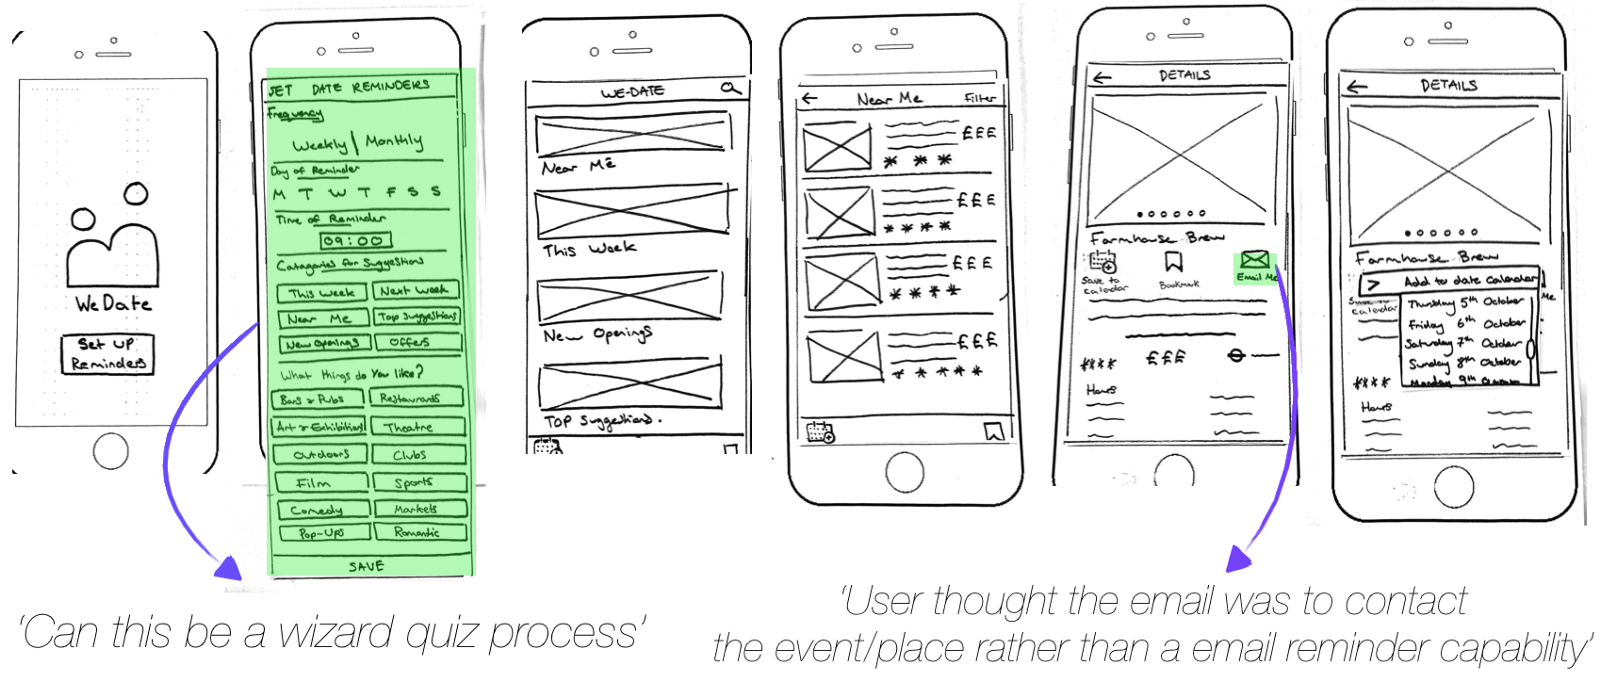 Using The Ux Process To Create A Date Planning App And Happy Couple Flow Diagram Iterations Be Made